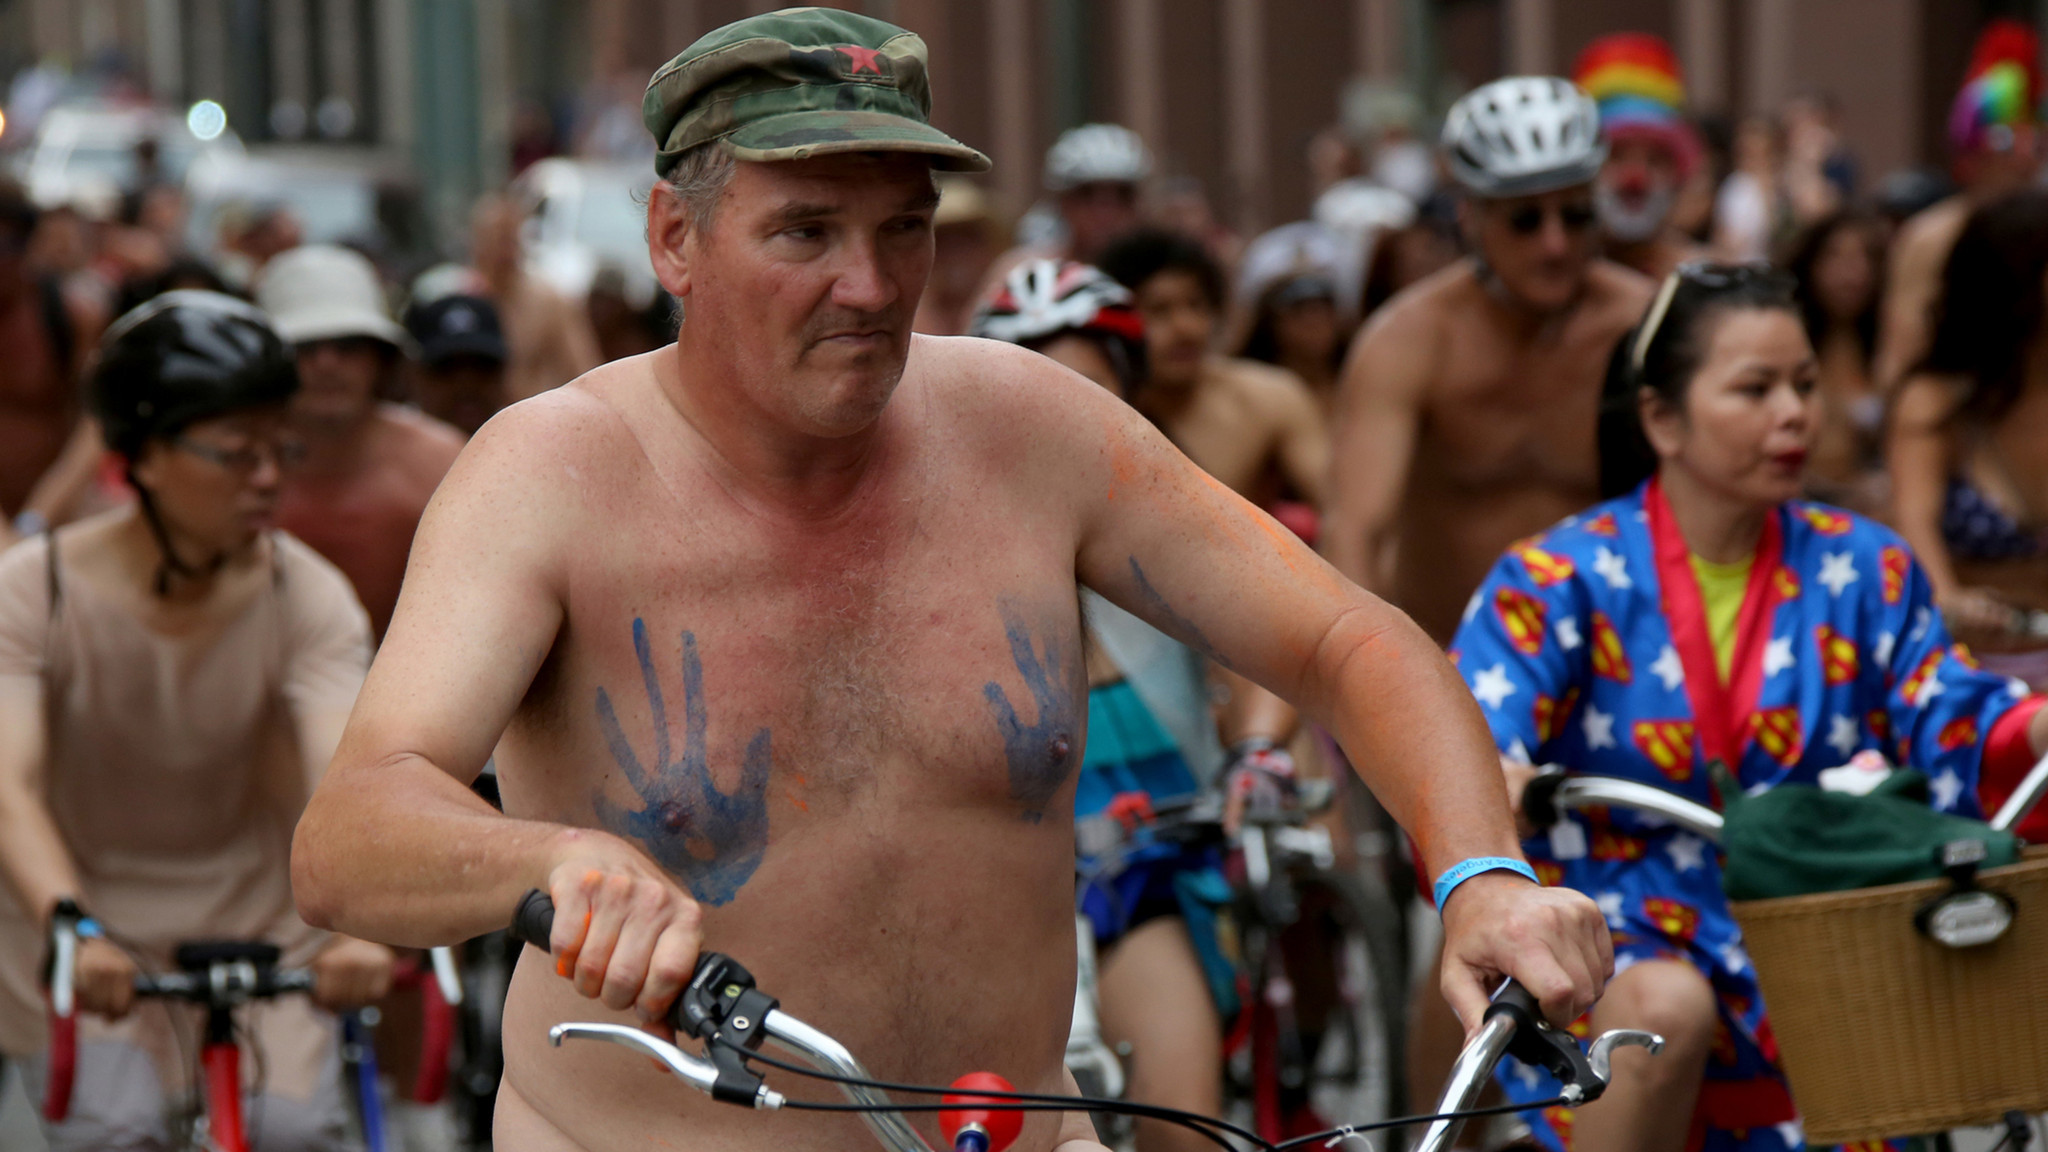 Naked Cycle Ride 82